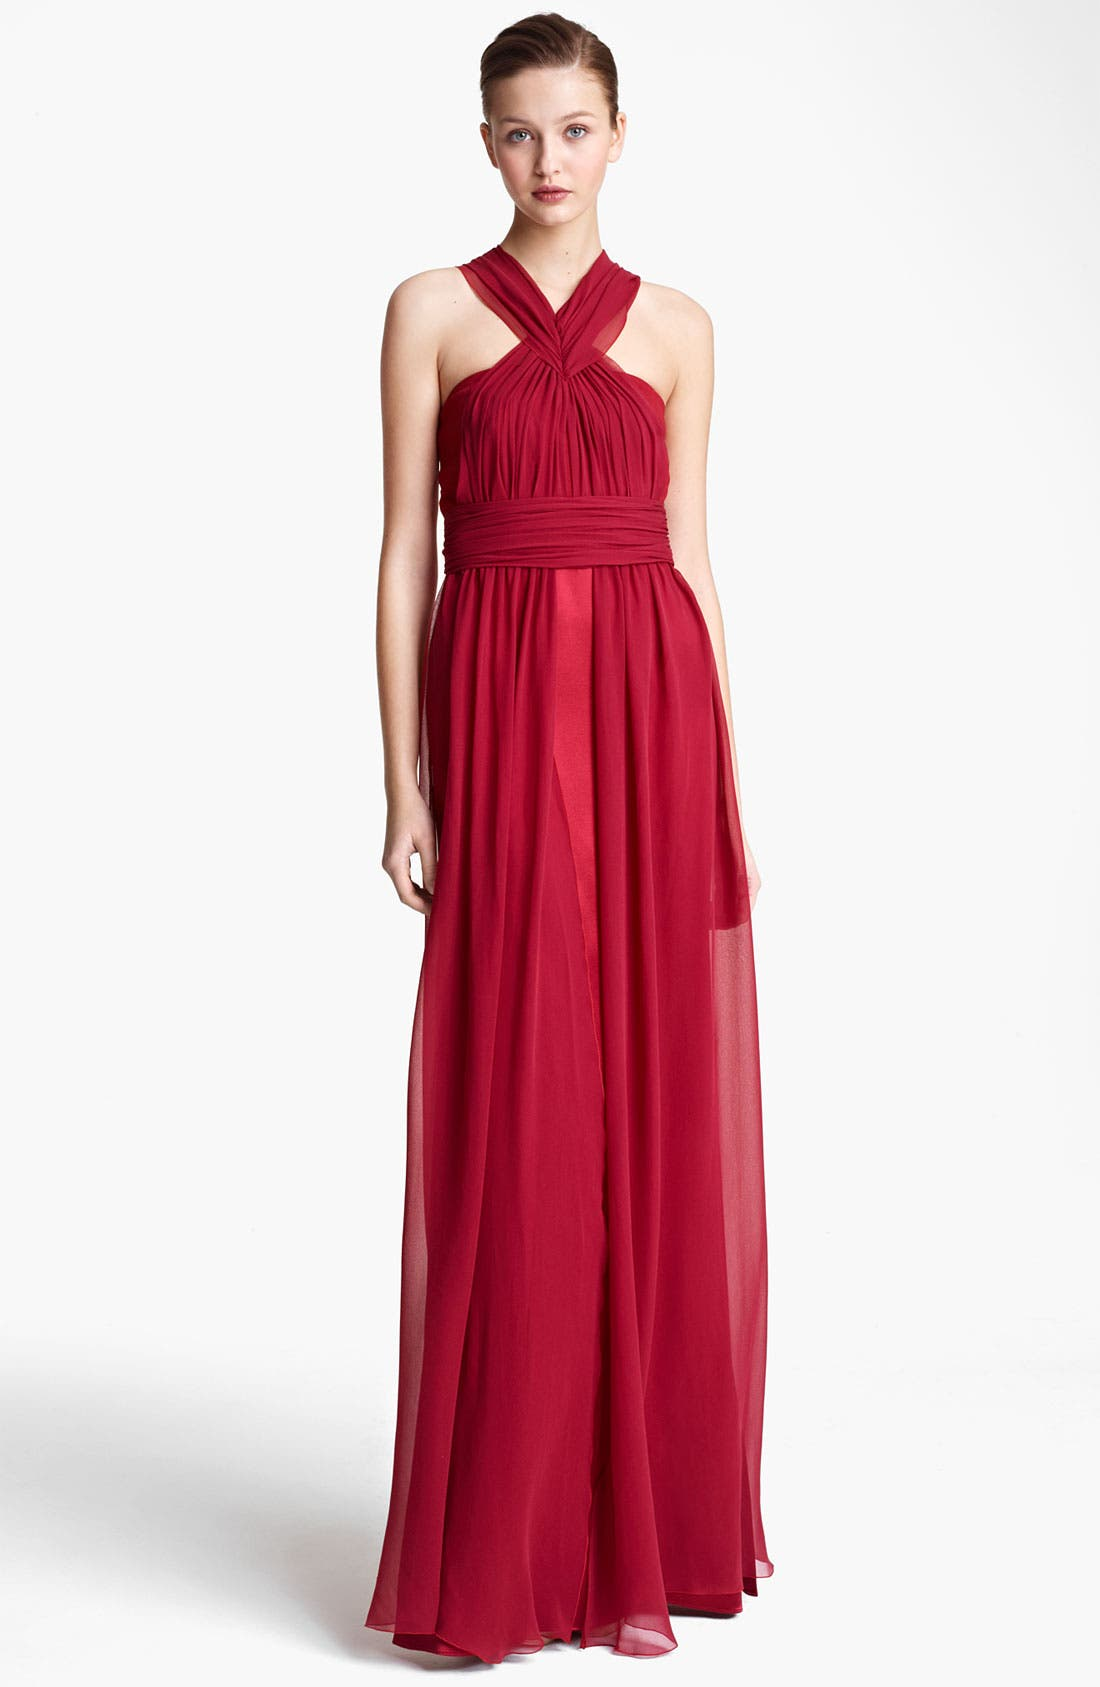 Alternate Image 1 Selected - Vionnet Ruched Chiffon & Satin Gown